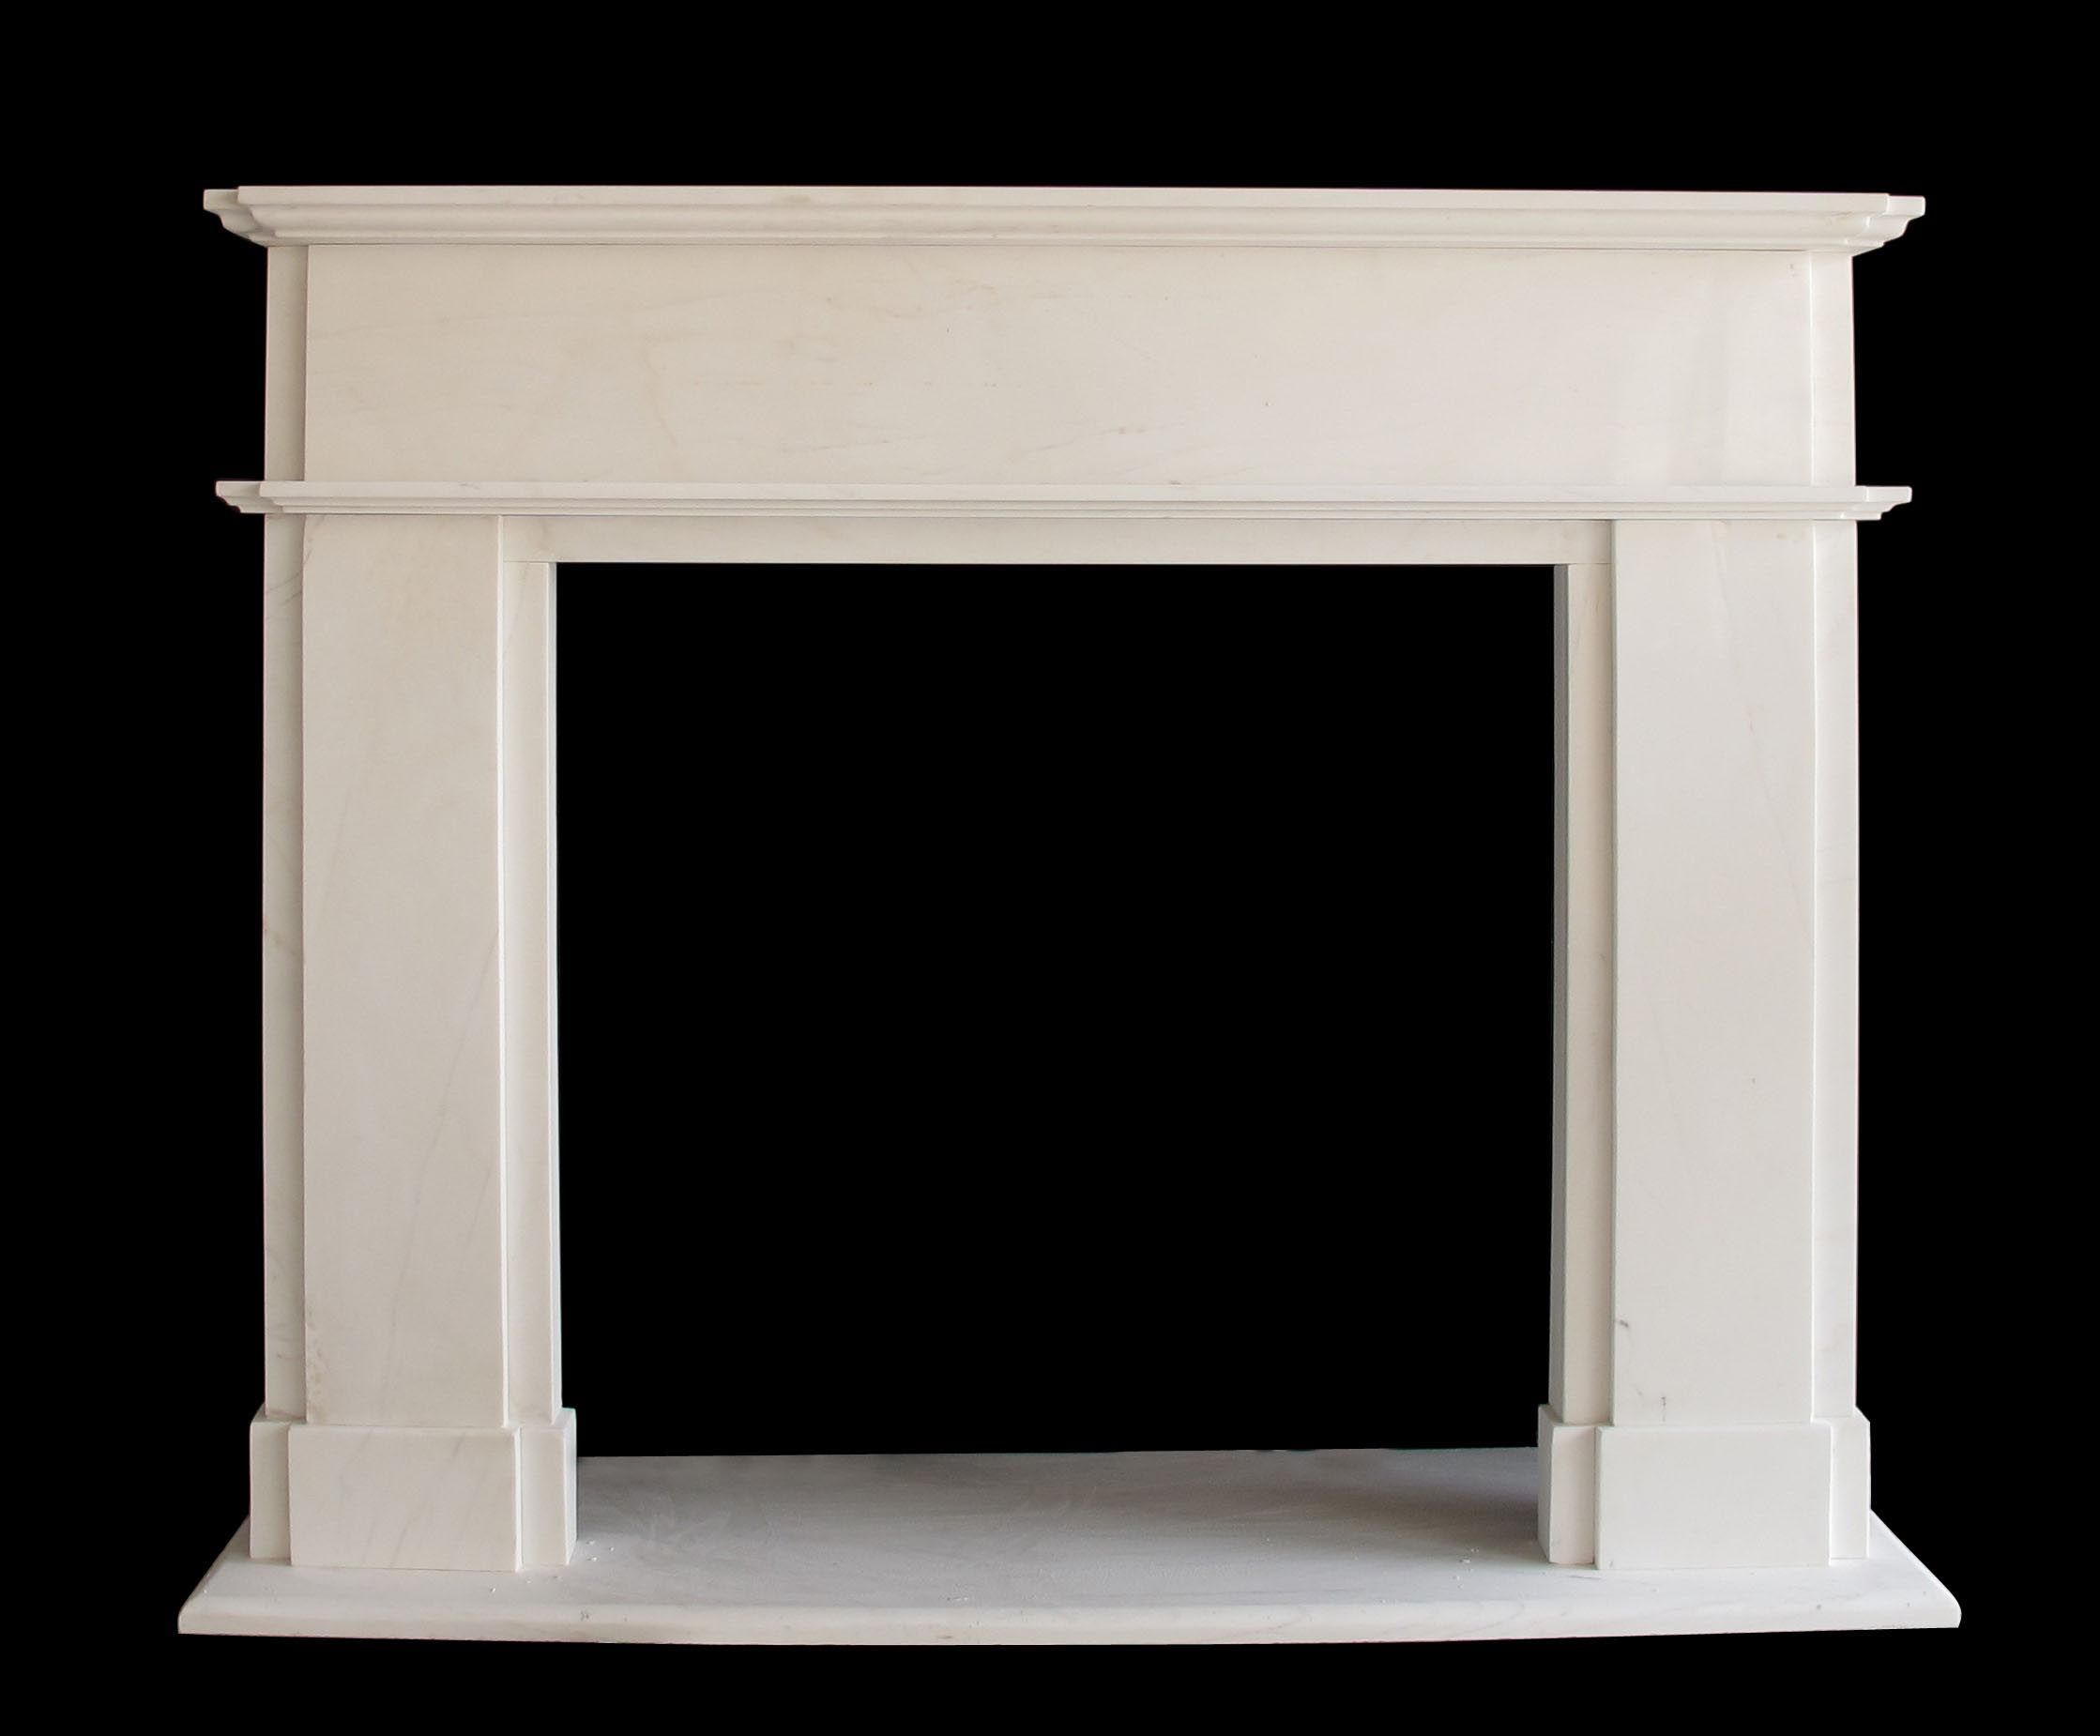 Traditional Marble Mantel Sale Cheap Fireplace Traditional Fireplace Mantel Traditional Fireplace Modern Fireplace Mantels